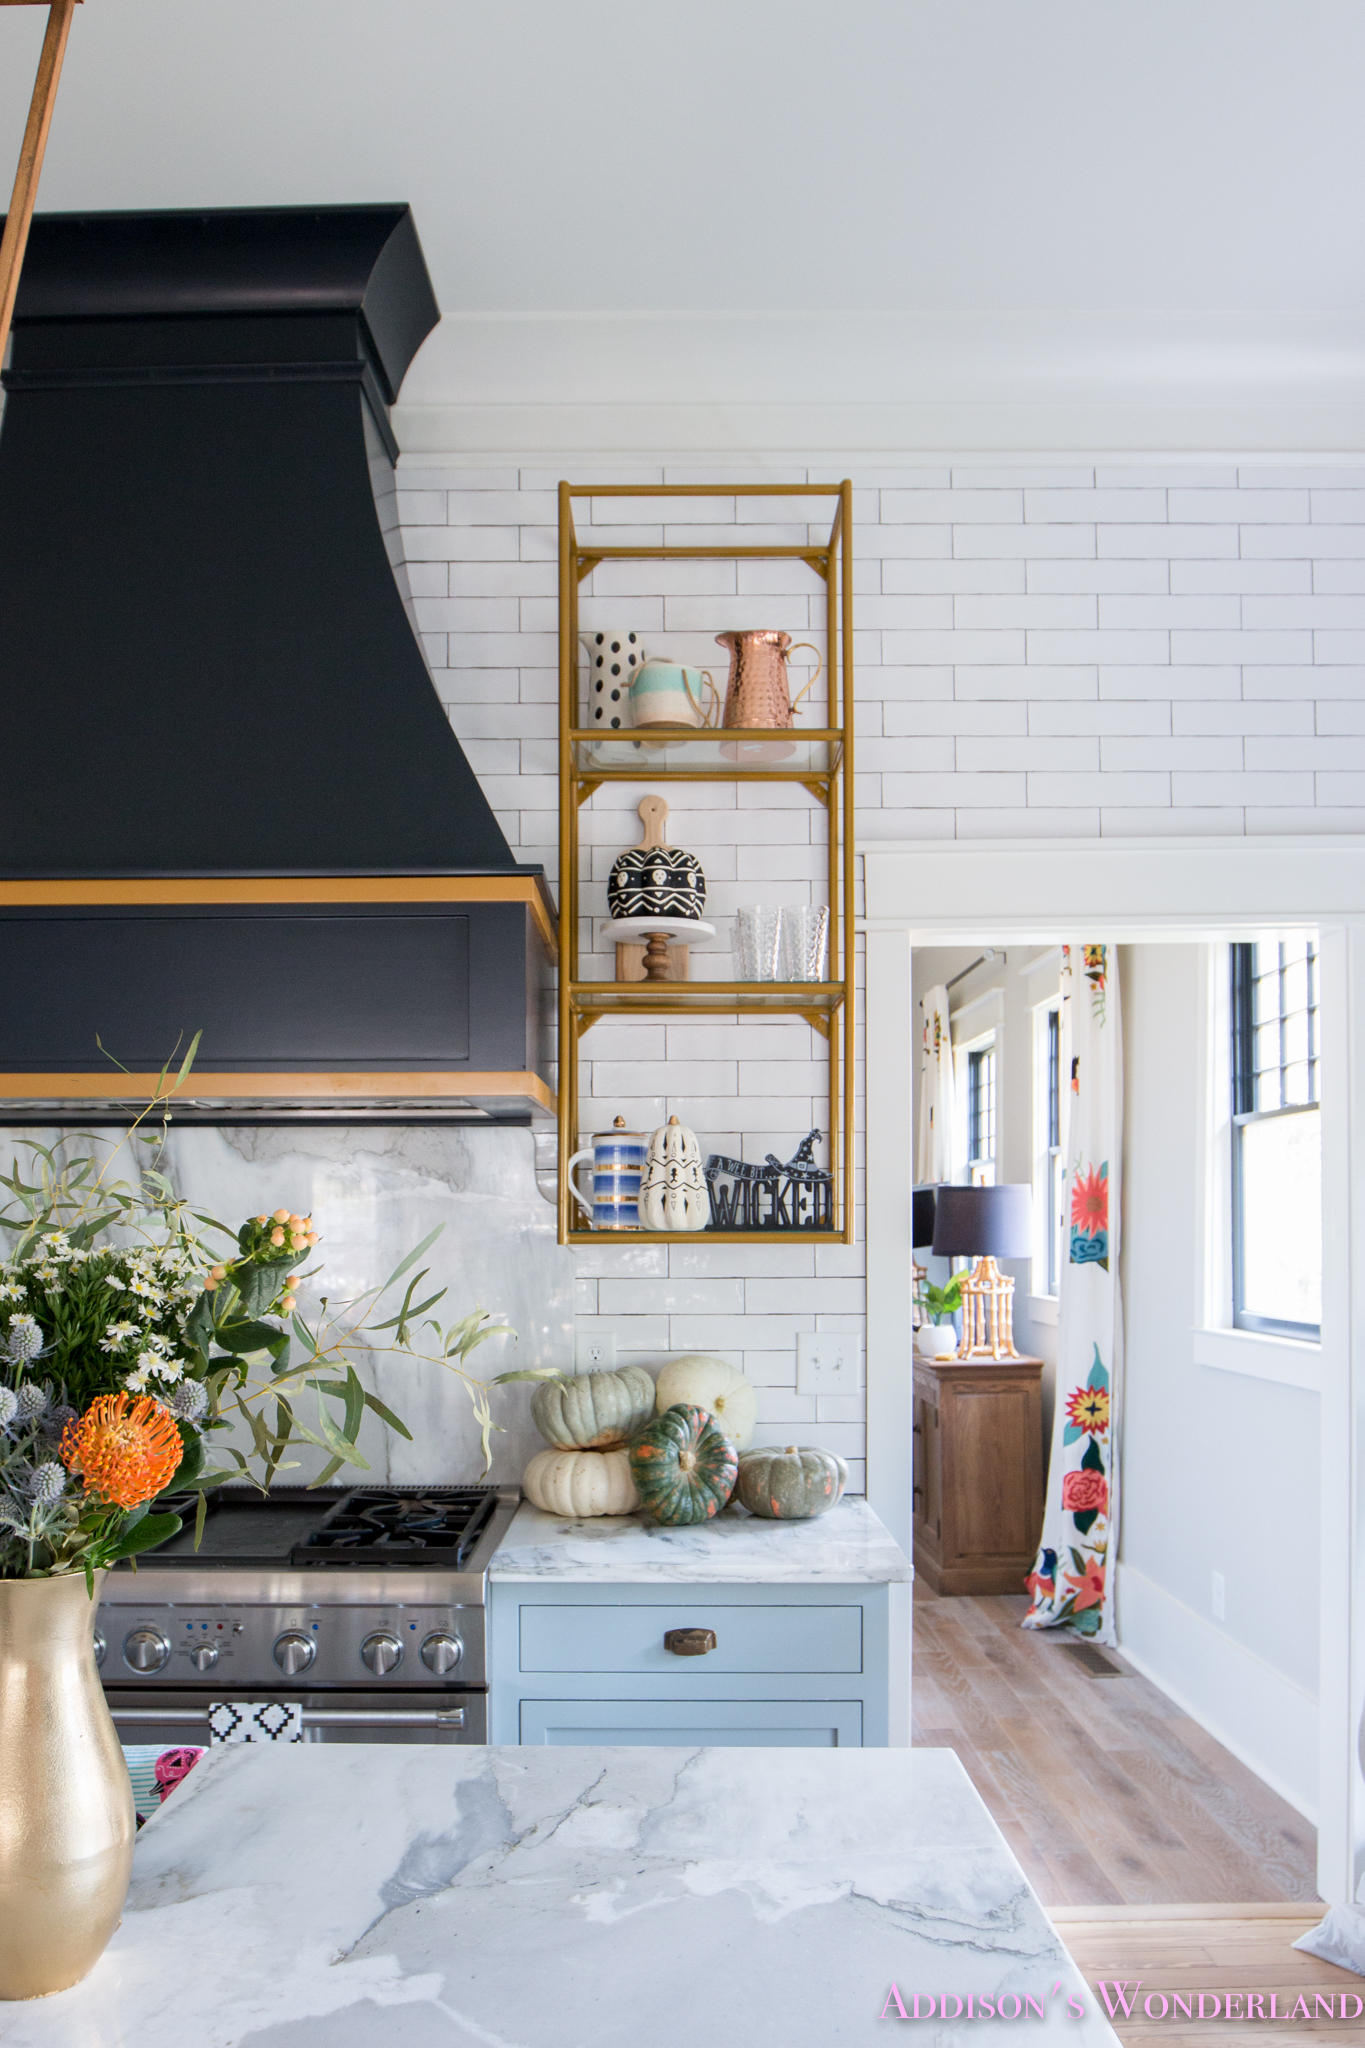 Our Quot Spooky Quot Halloween Kitchen With Fall Decorating Ideas